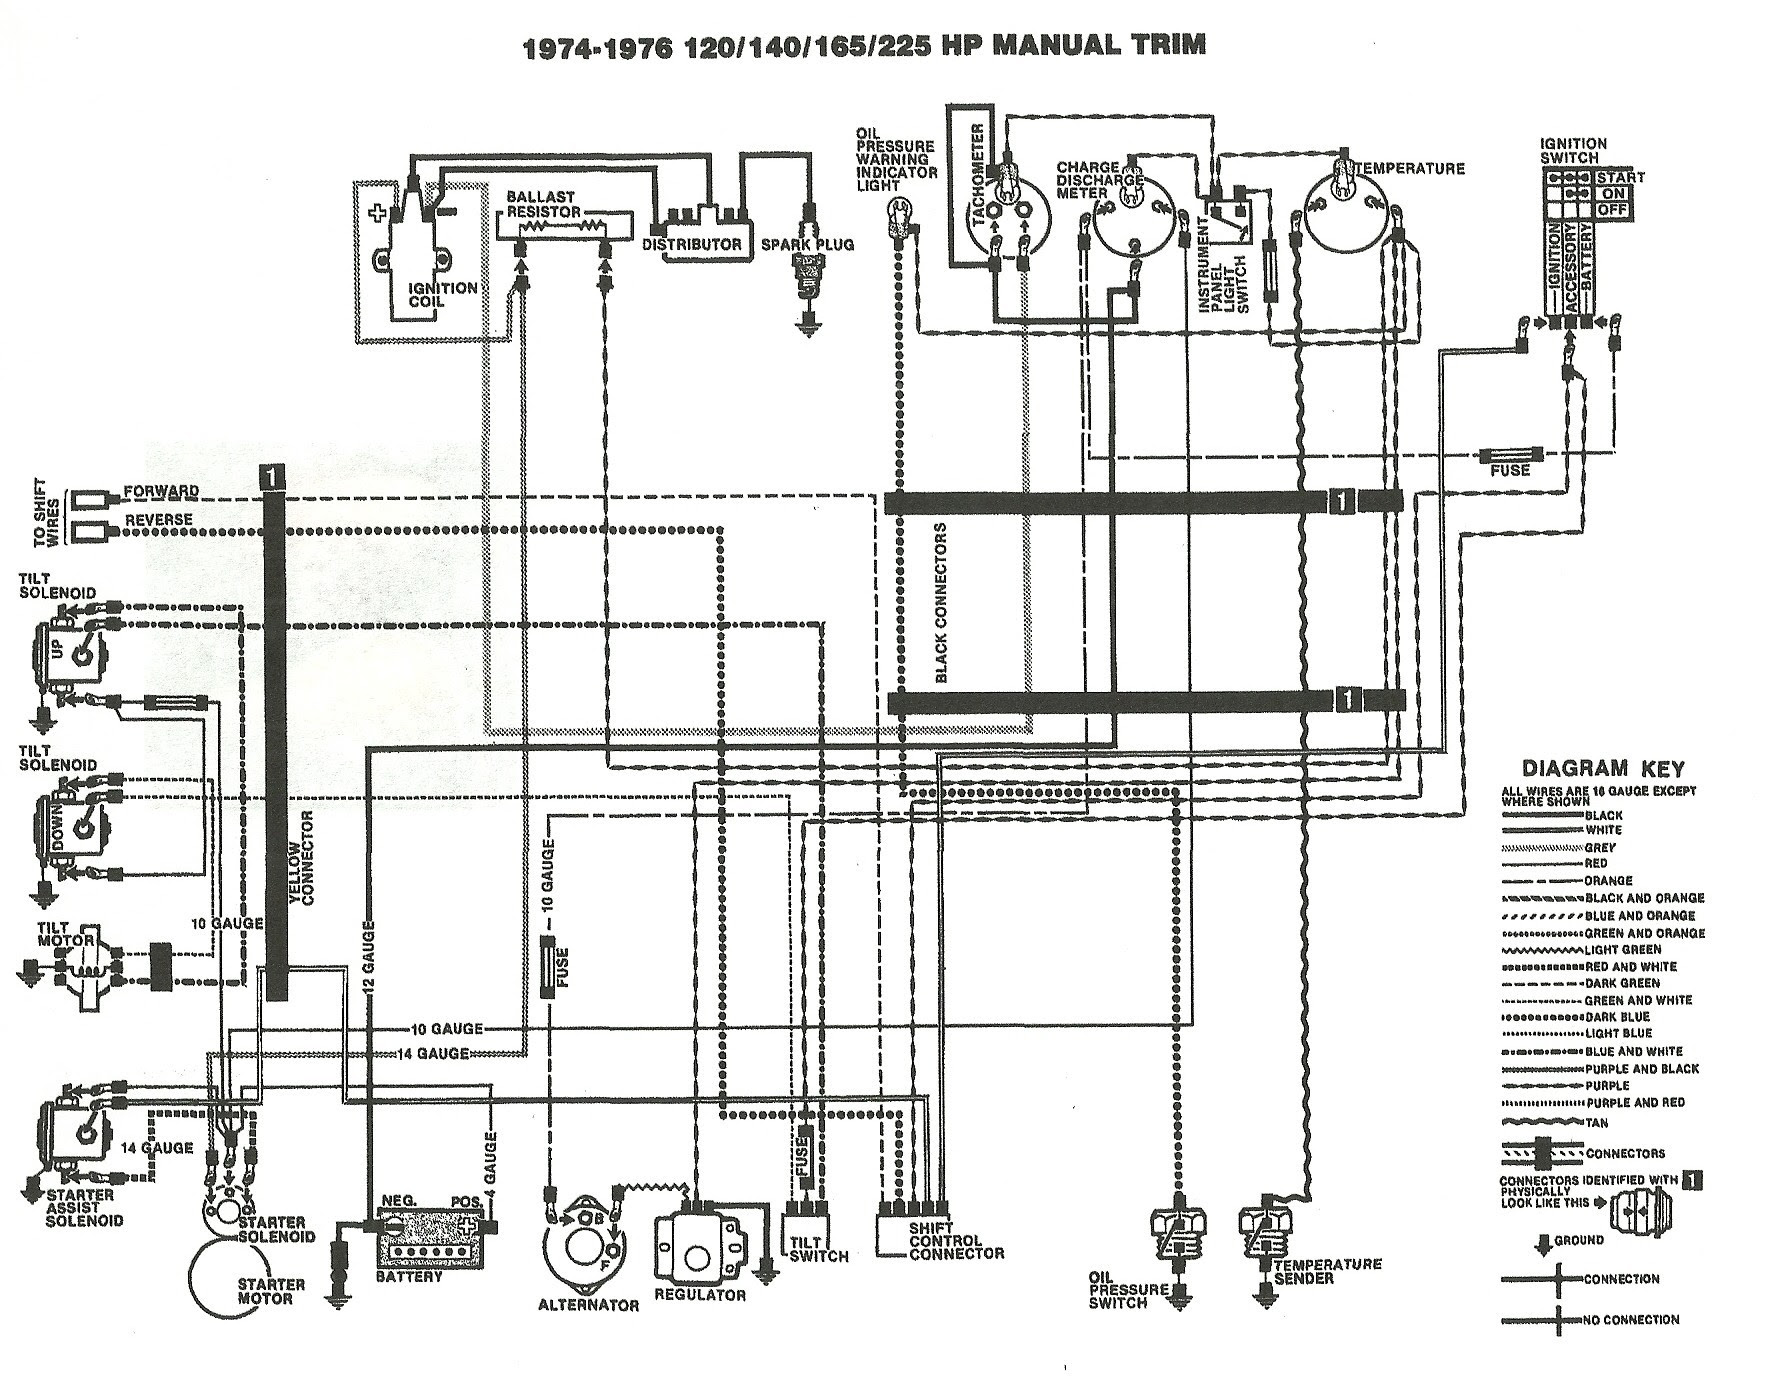 Wiring Manual PDF: 120 Hp Mercruiser Engine Diagram